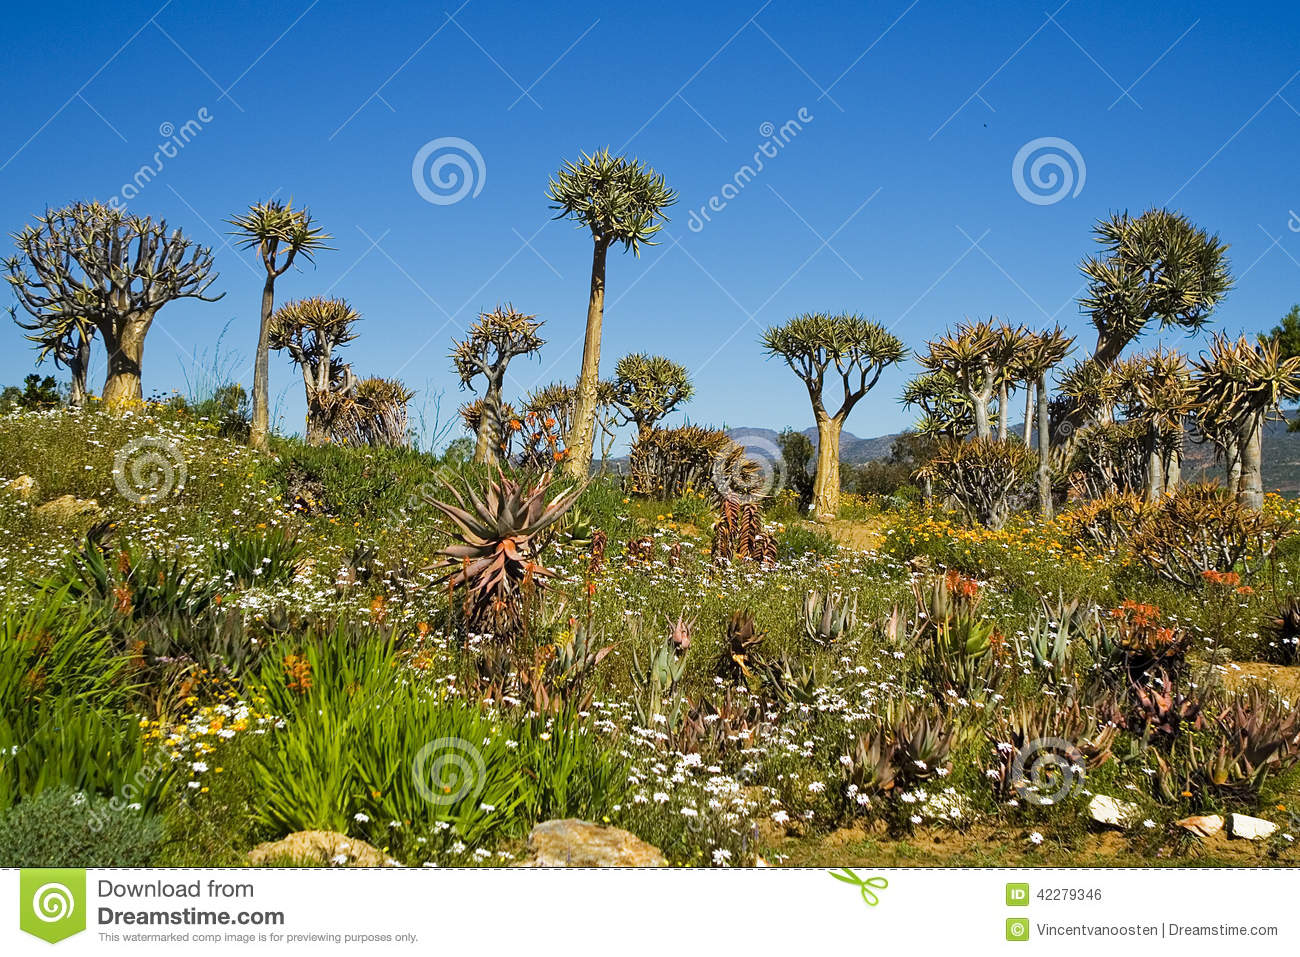 South african plants and trees - photo#27